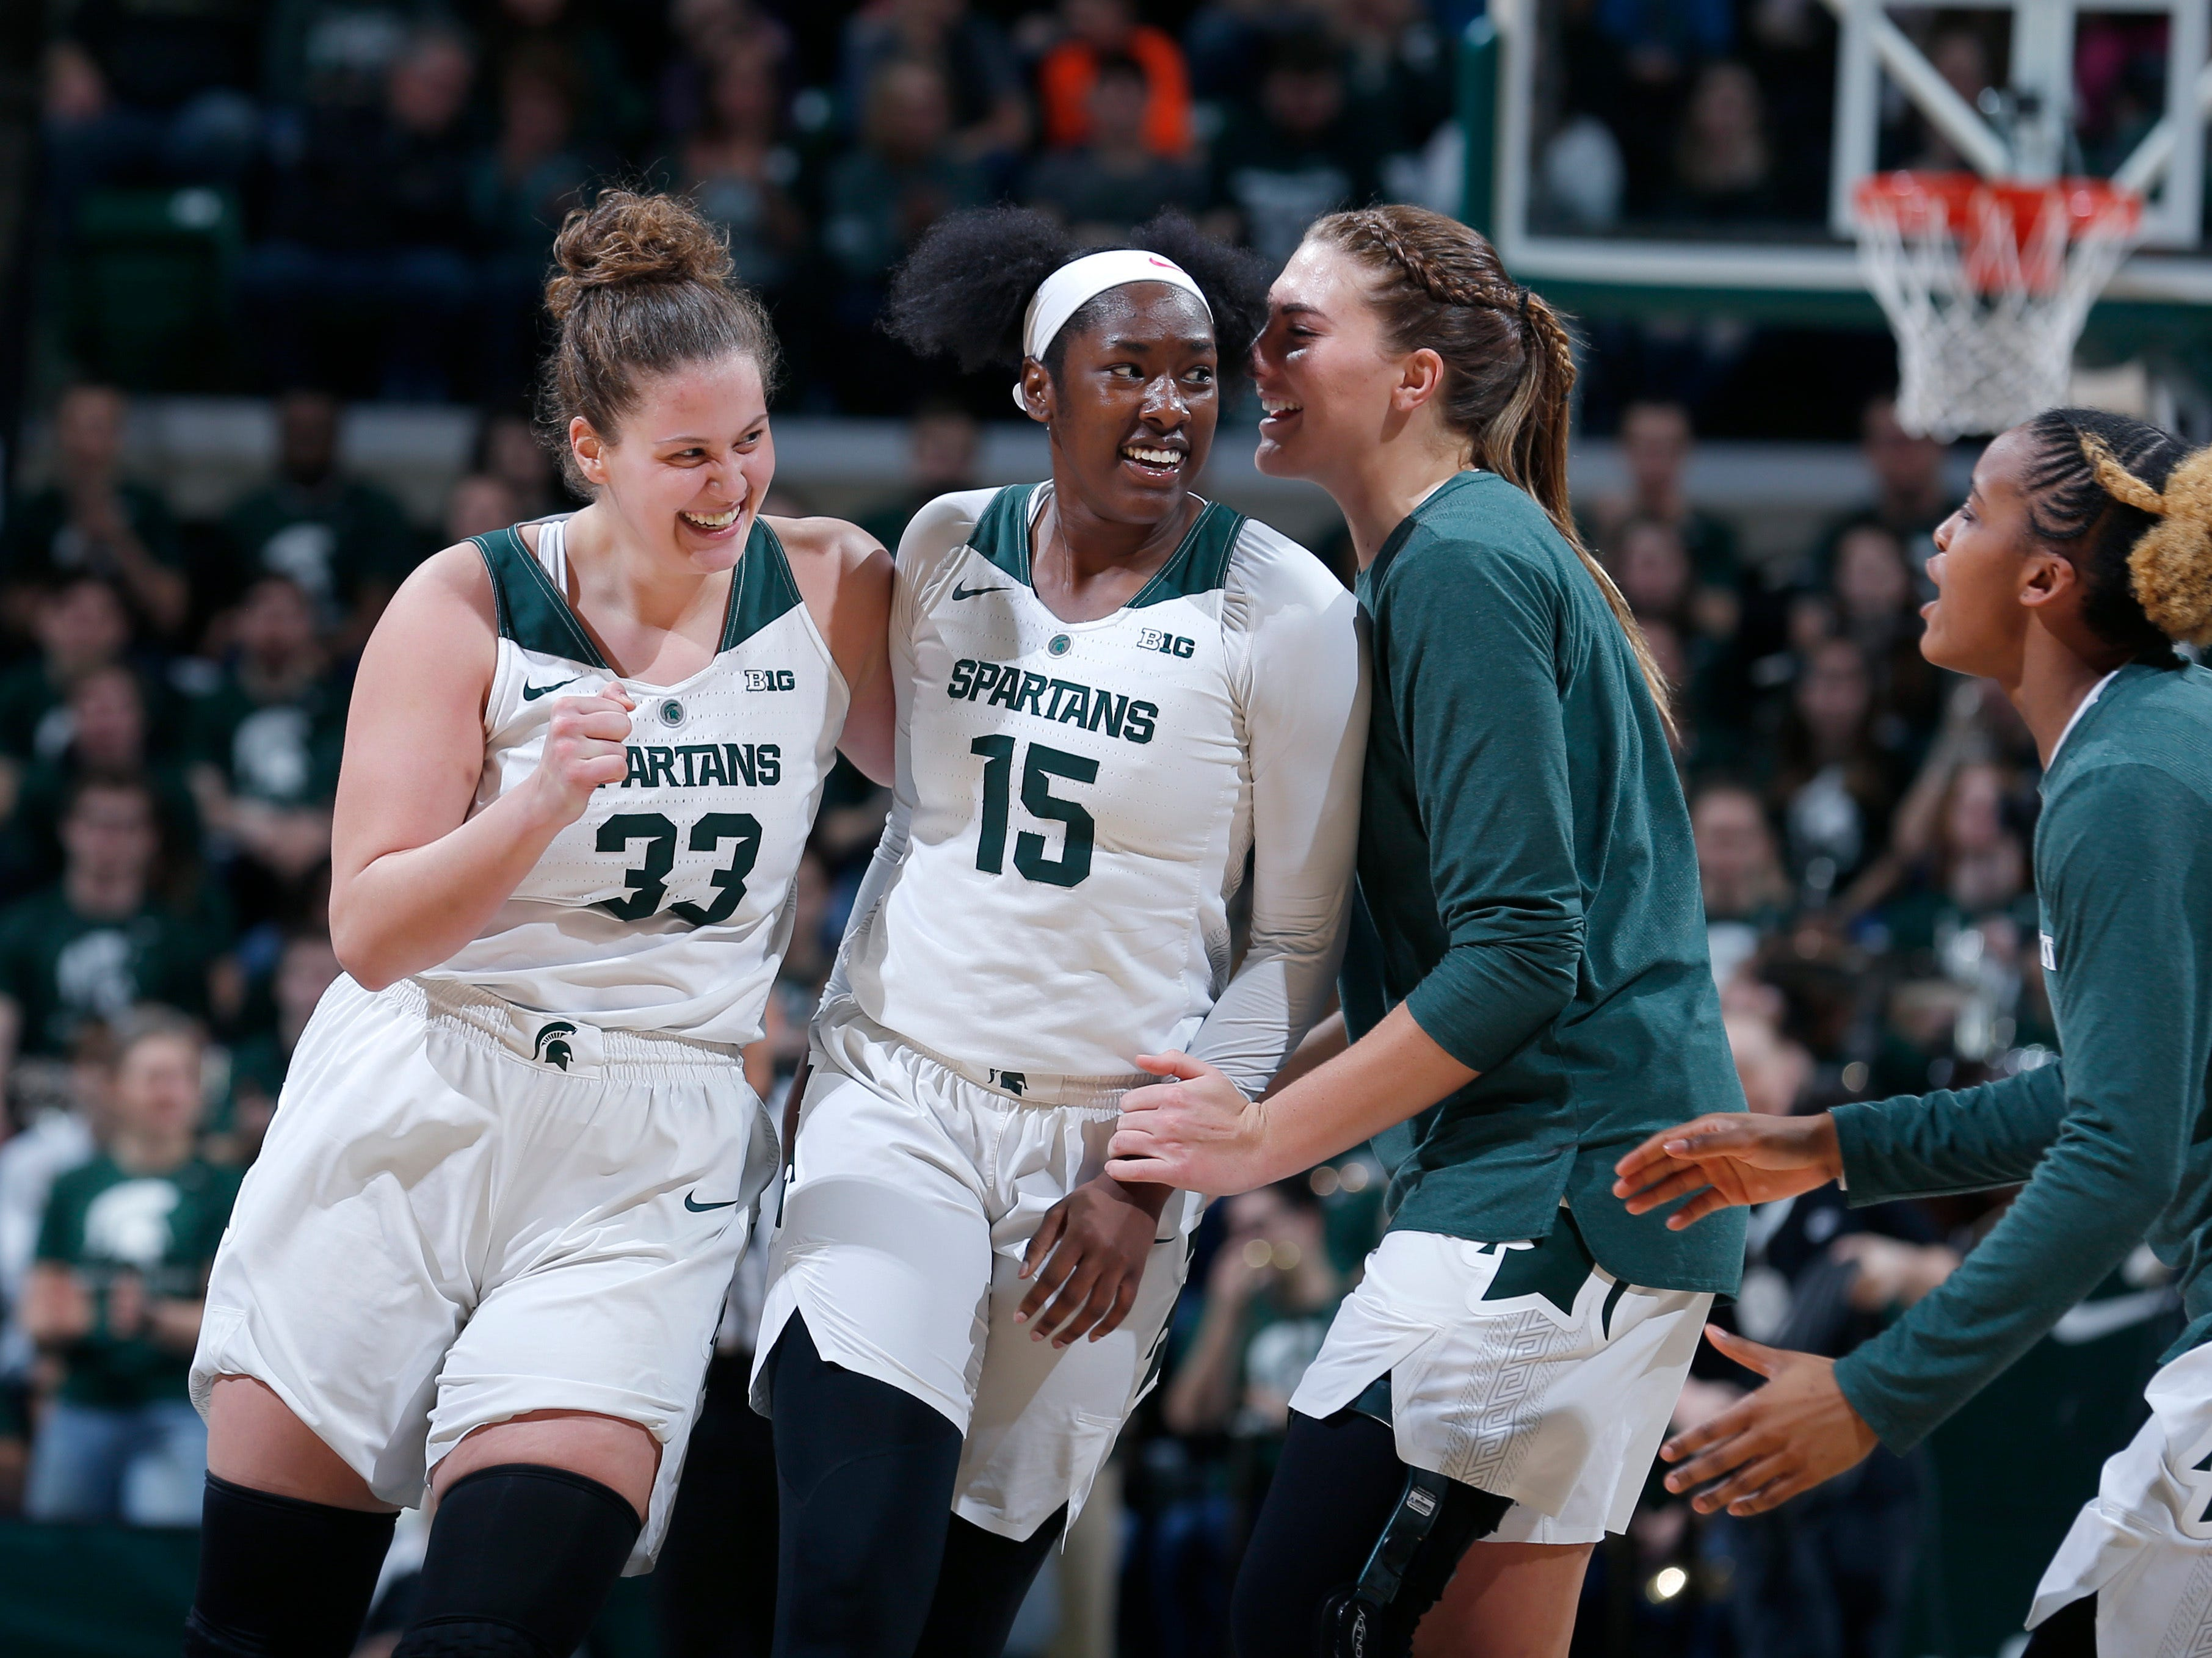 Michigan State's Jenna Allen, from left, Victoria Gaines (15), Kayla Belles and Shay Colley celebrate during the Spartans' 74-64 victory over the Michigan Wolverines in East Lansing,  Sunday, Feb. 24, 2019.